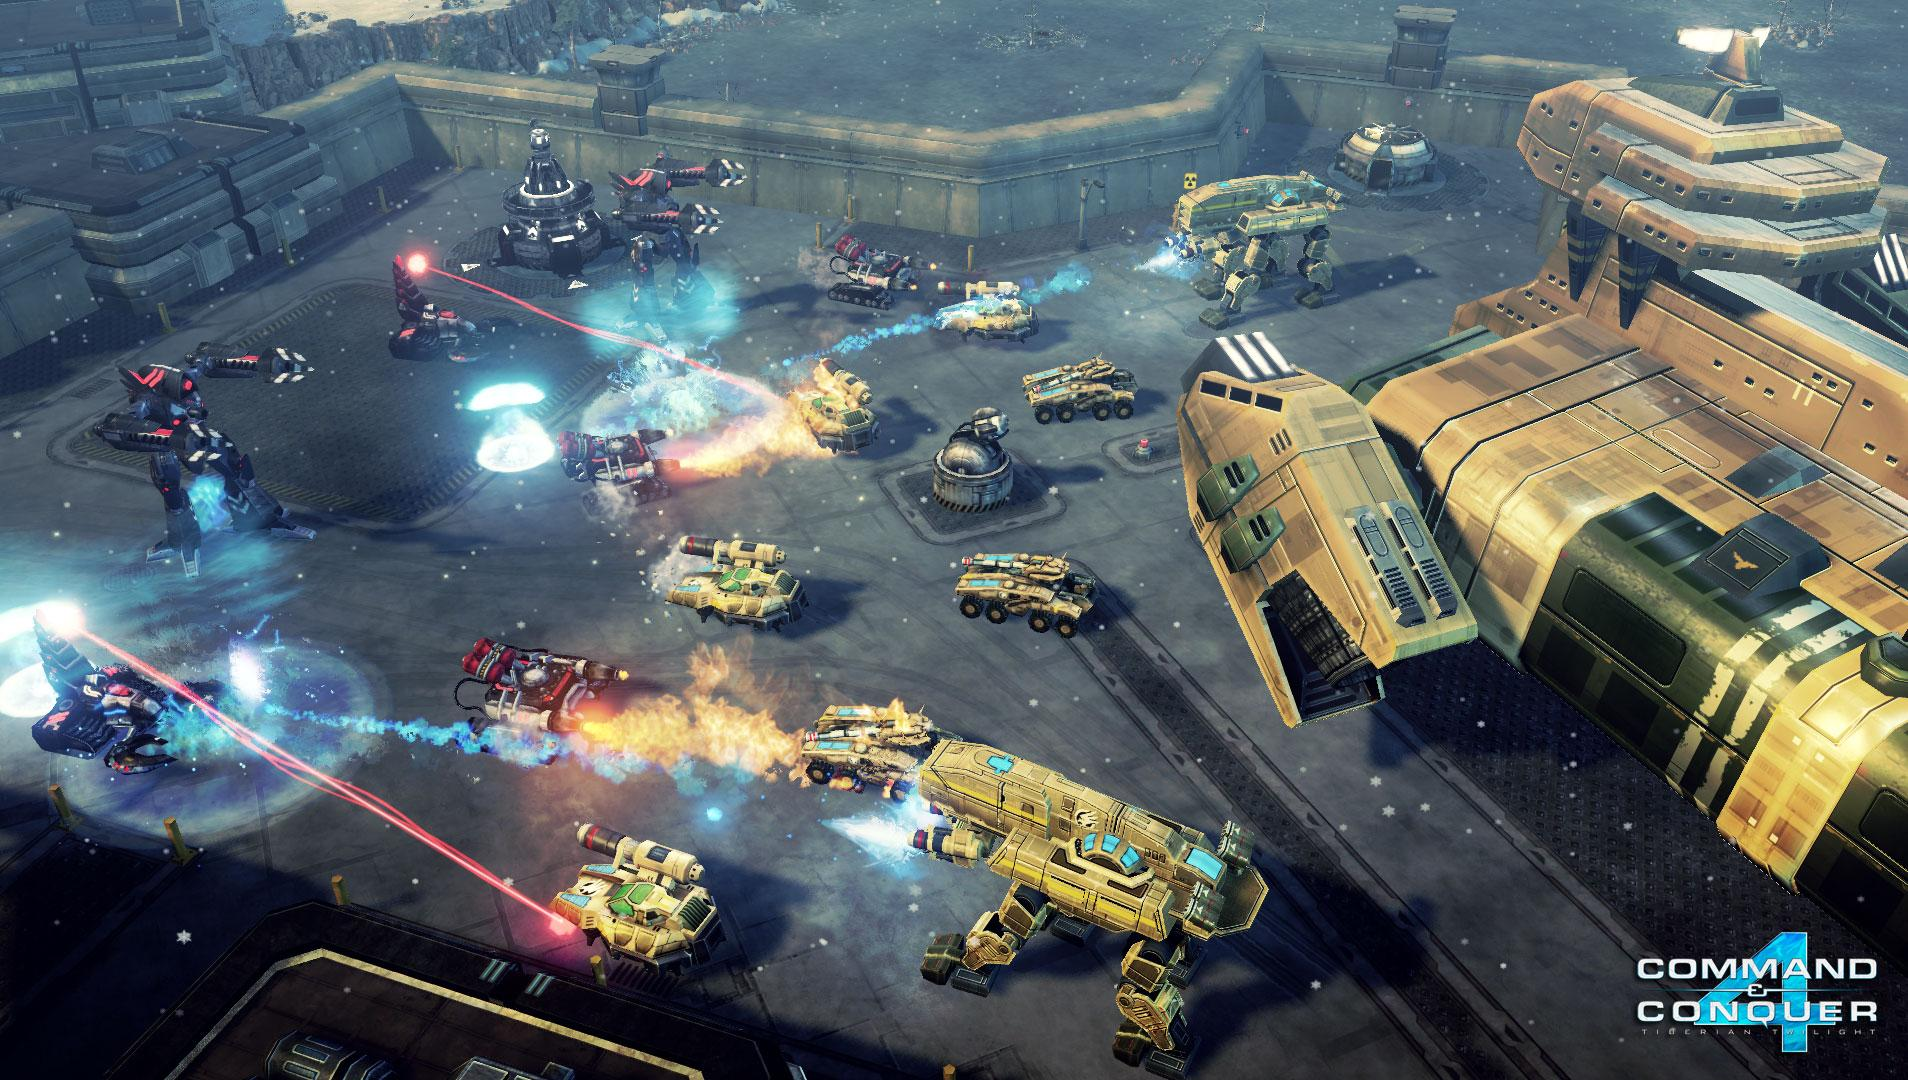 Command & Conquer: Tiberian Sun free to download